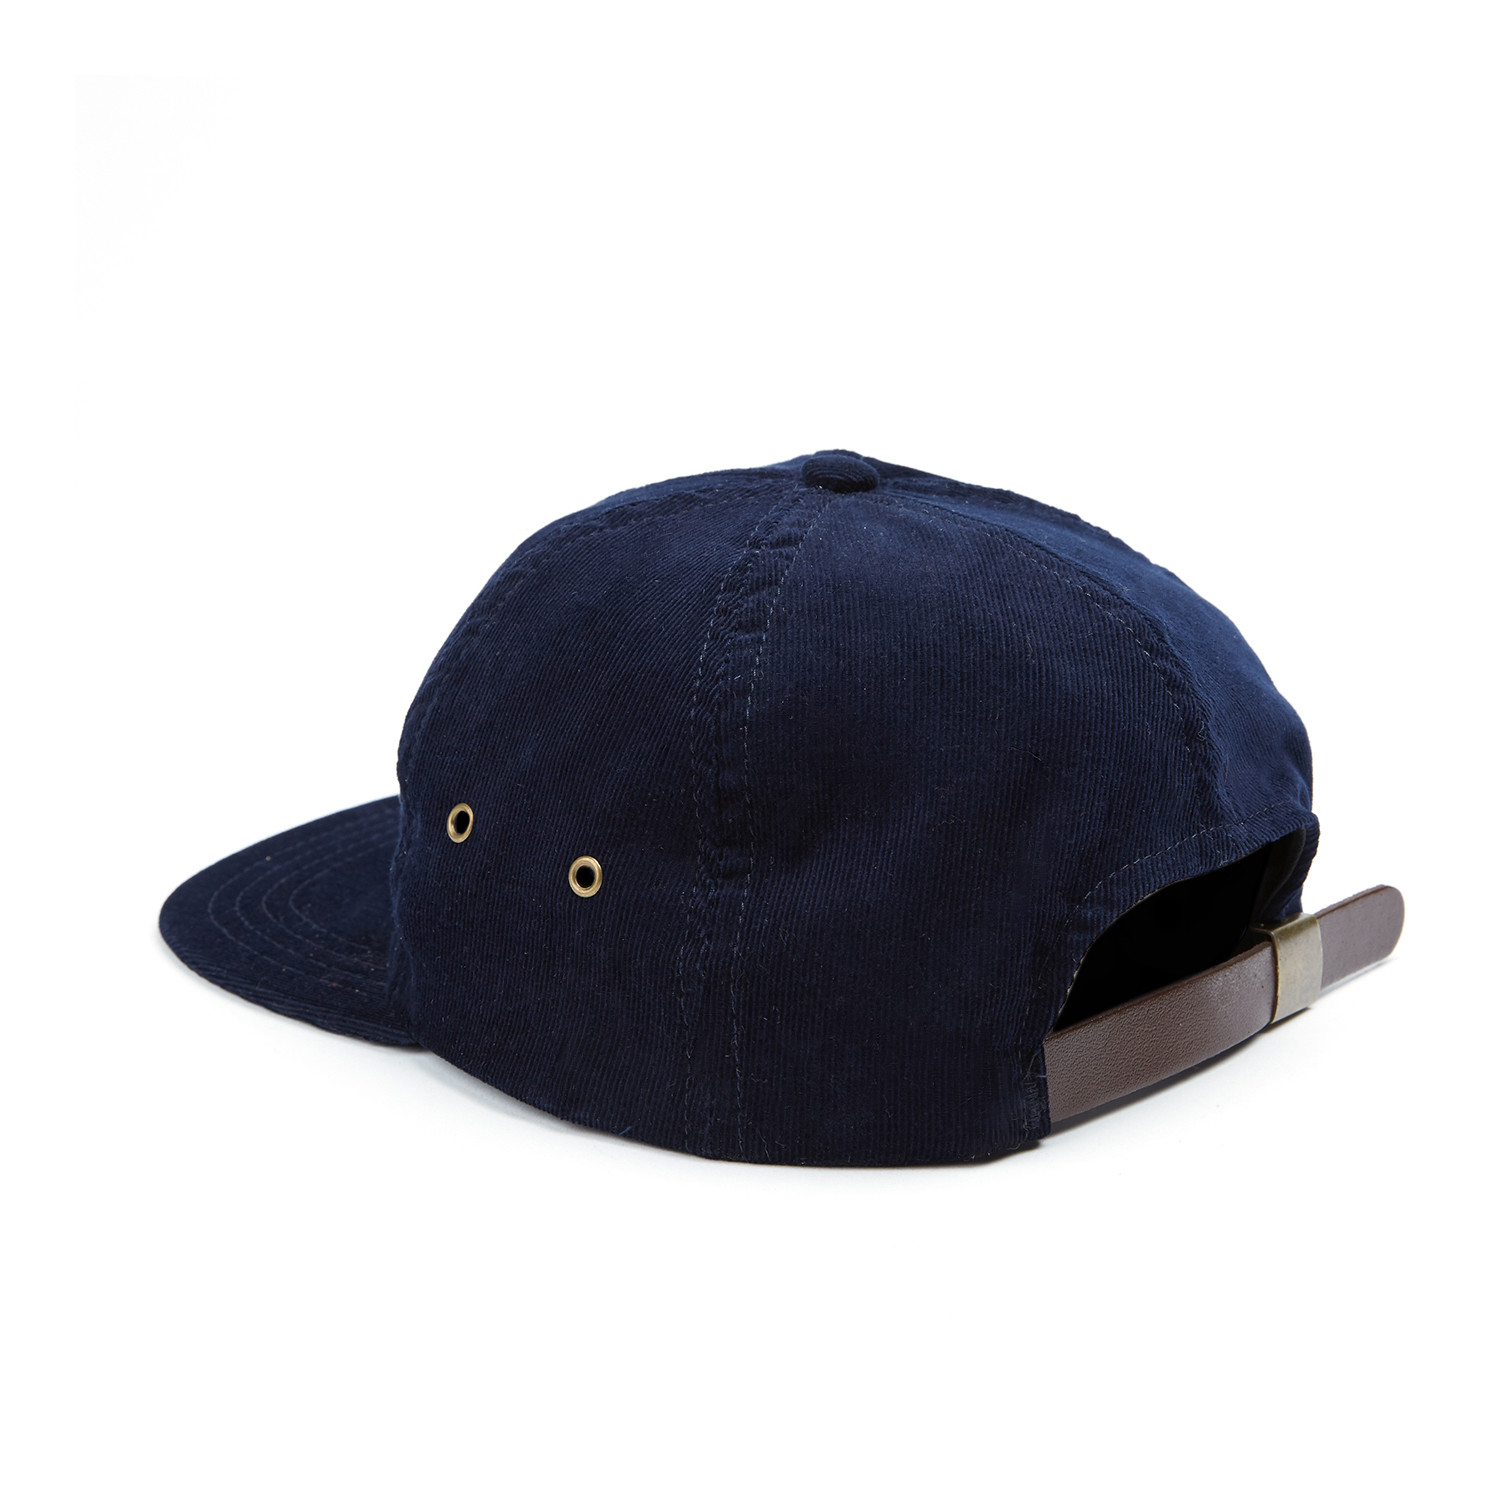 Classic Corduroy Polo Hat    Navy - The Essential Supply Co. - Touch ... c2e28f1915c